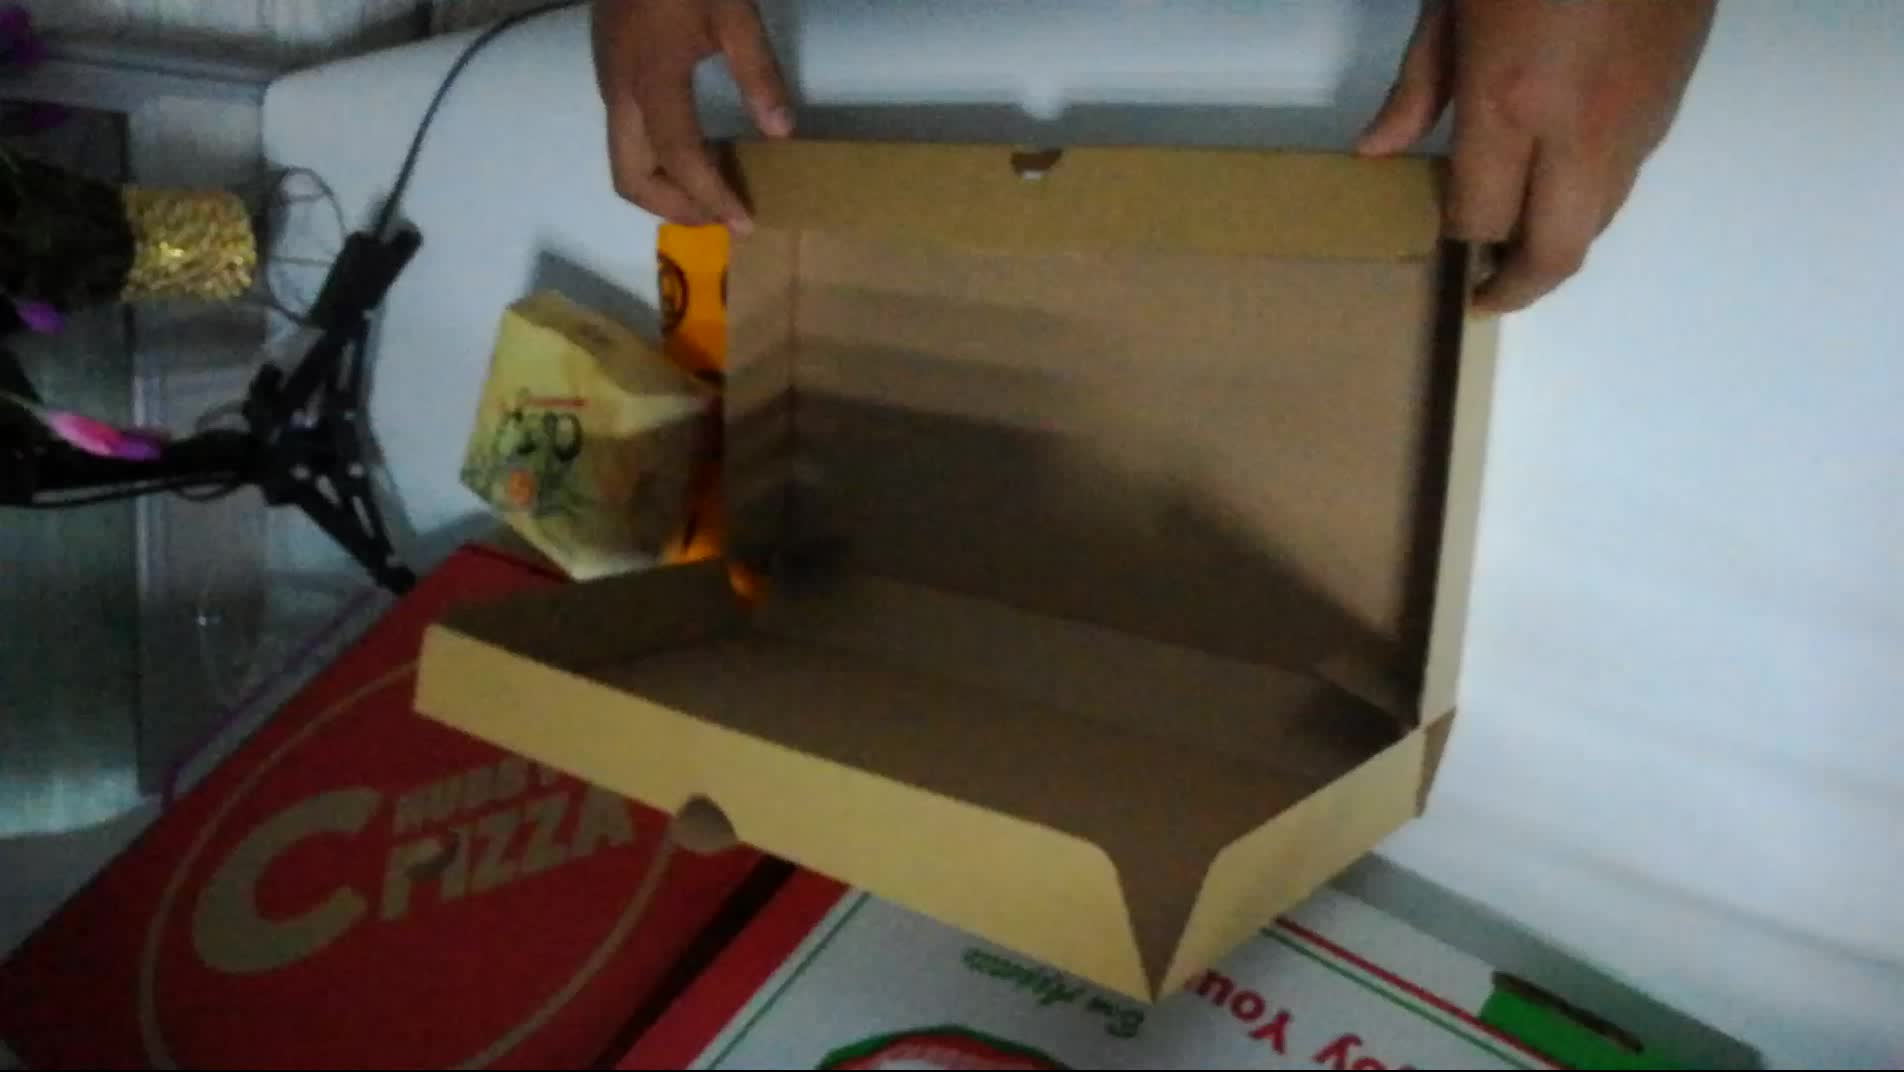 10-18 corrugated  pizza packaging box